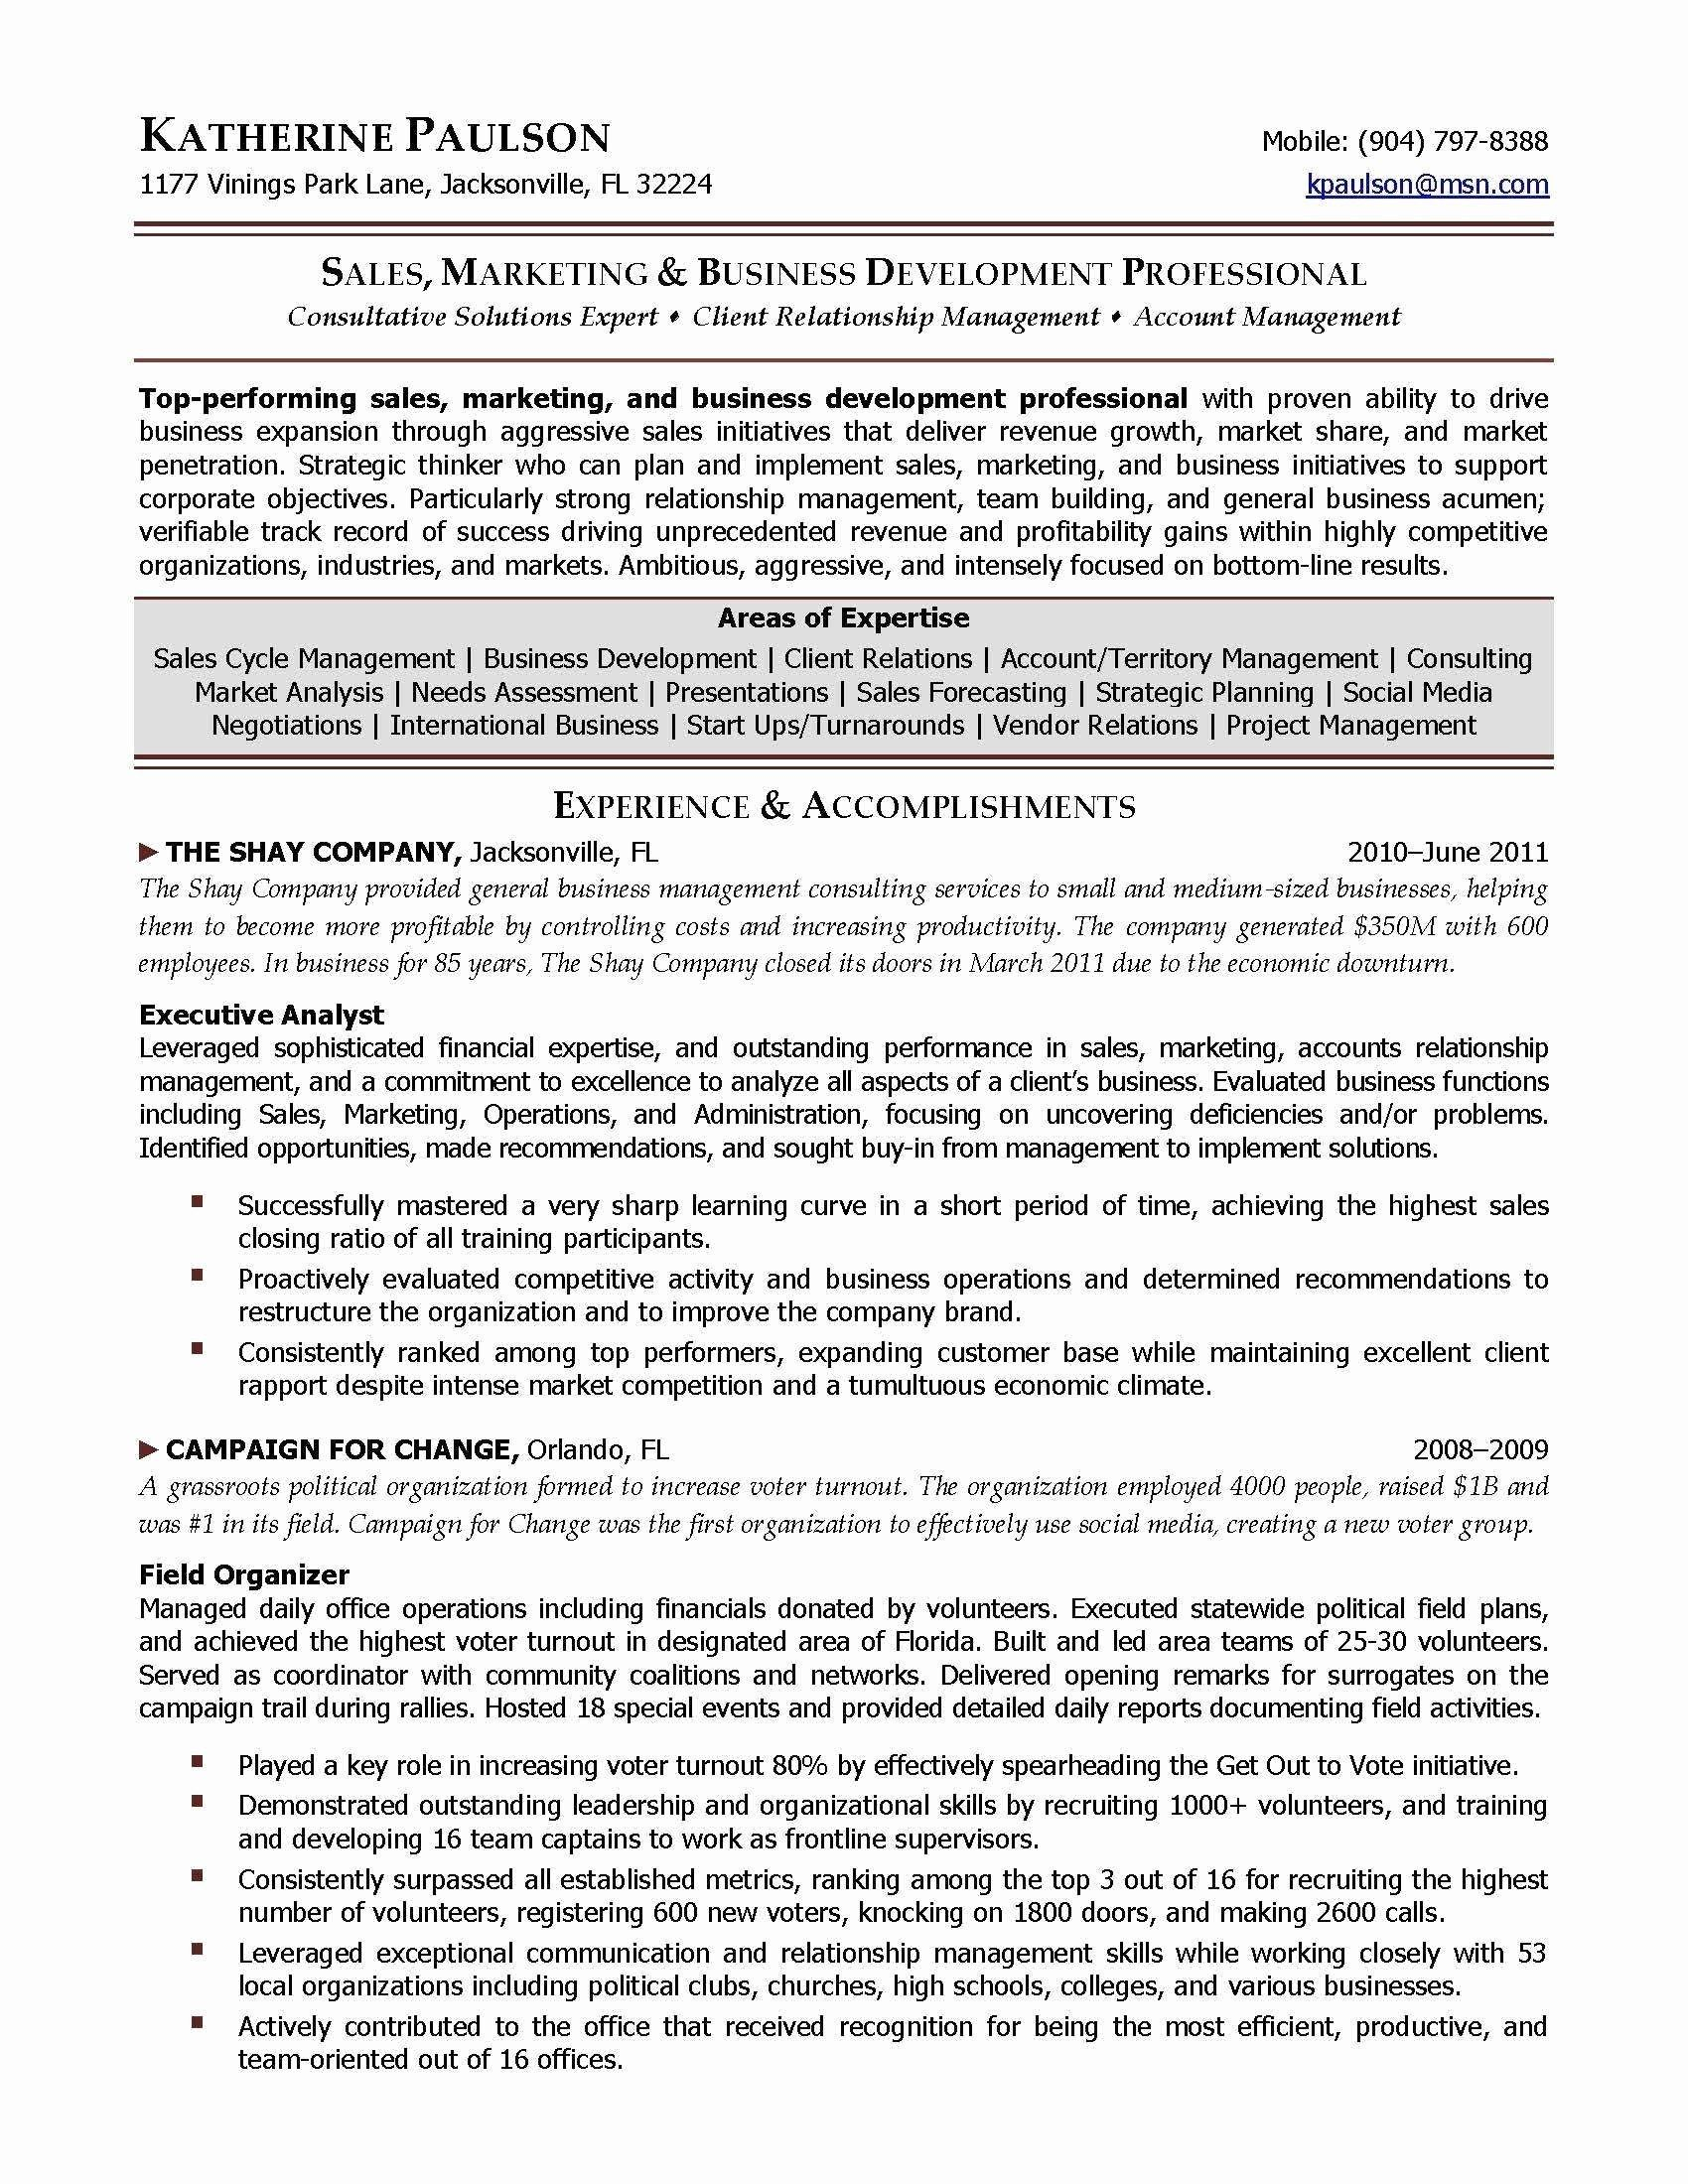 New High Level Business Requirements Template